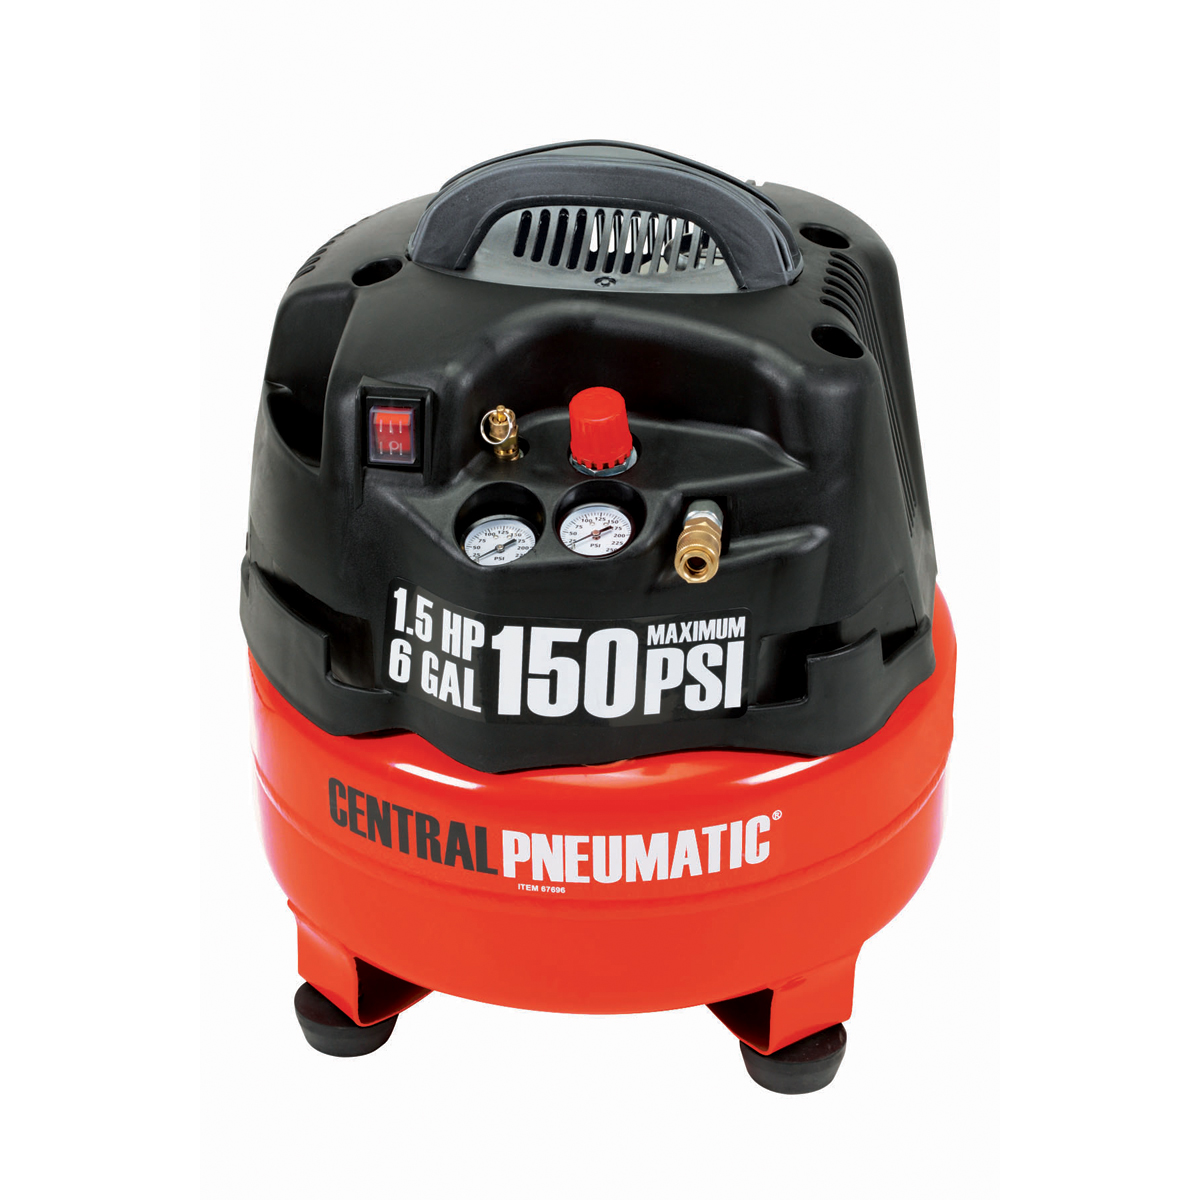 6 Gal  1 5 Hp 150 Psi Professional Air Compressor